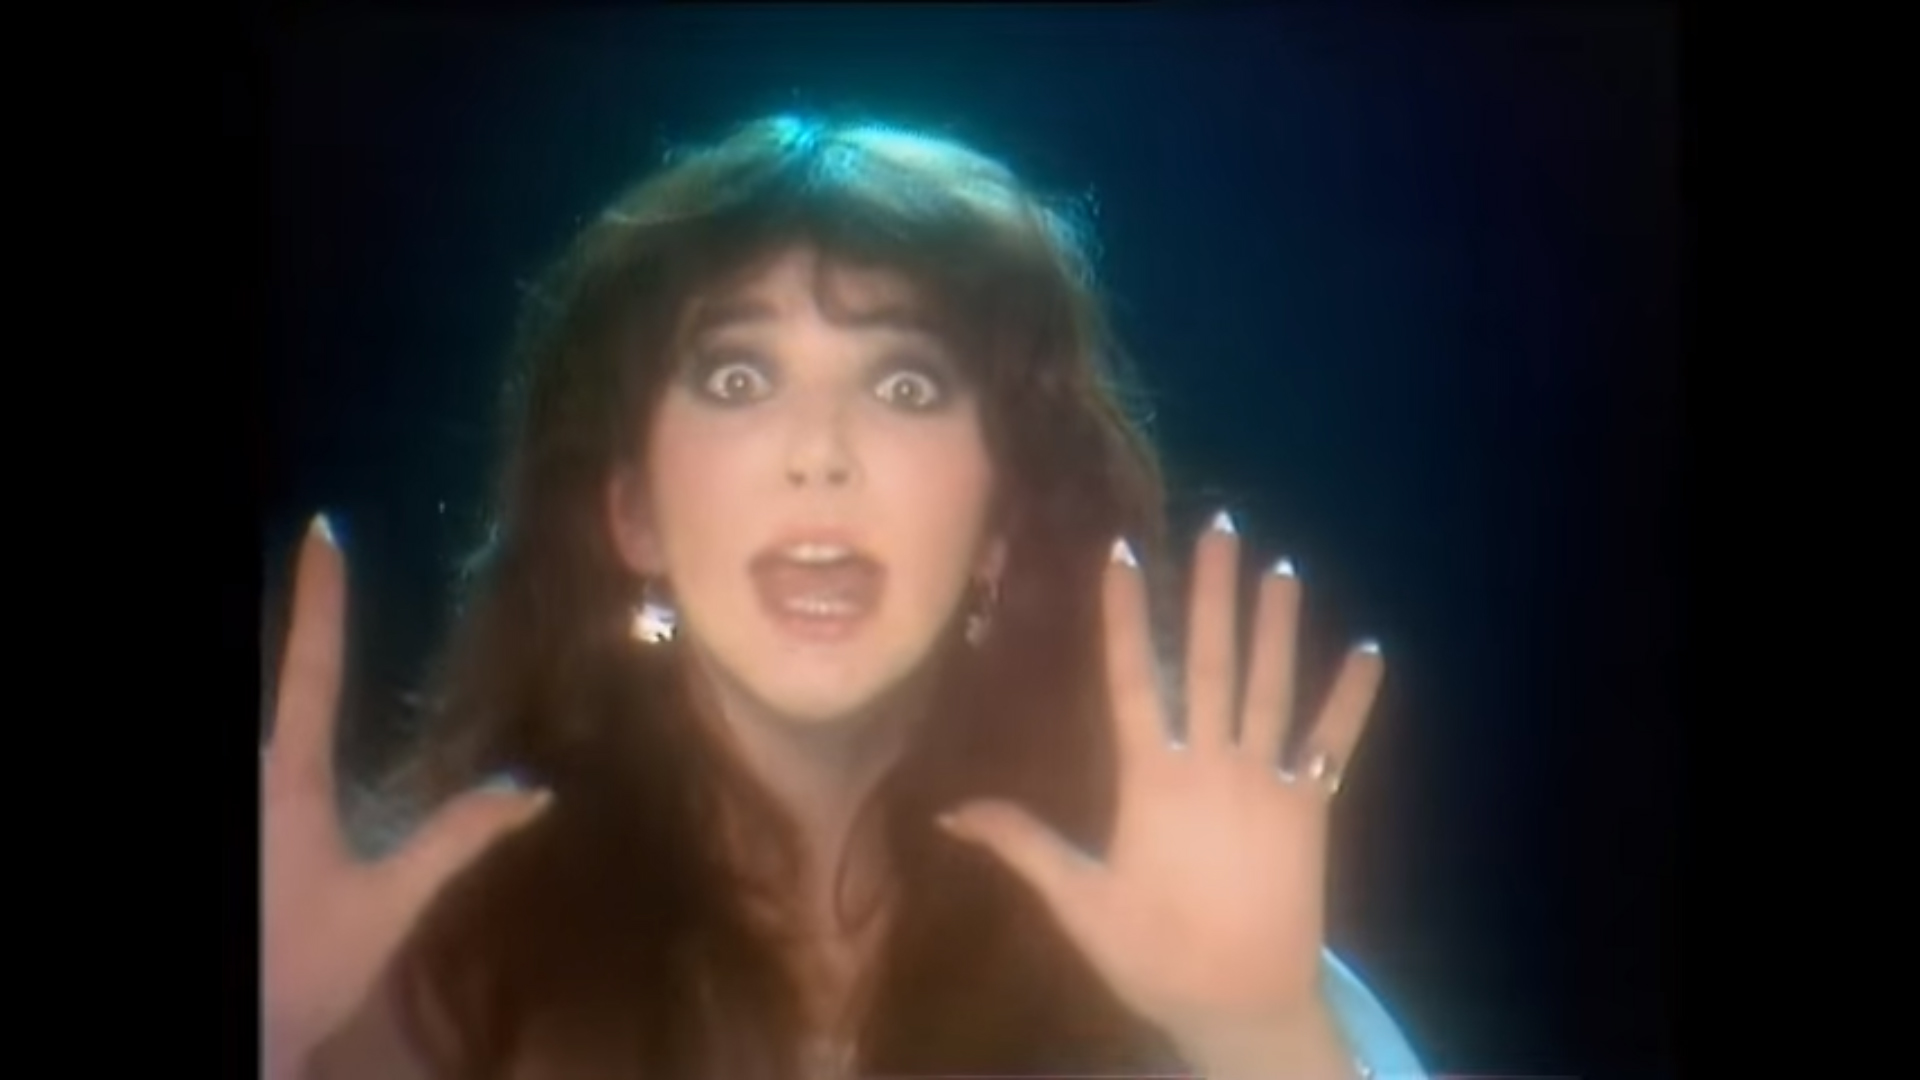 How well do you know the lyrics to Kate Bush's Wuthering Heights?